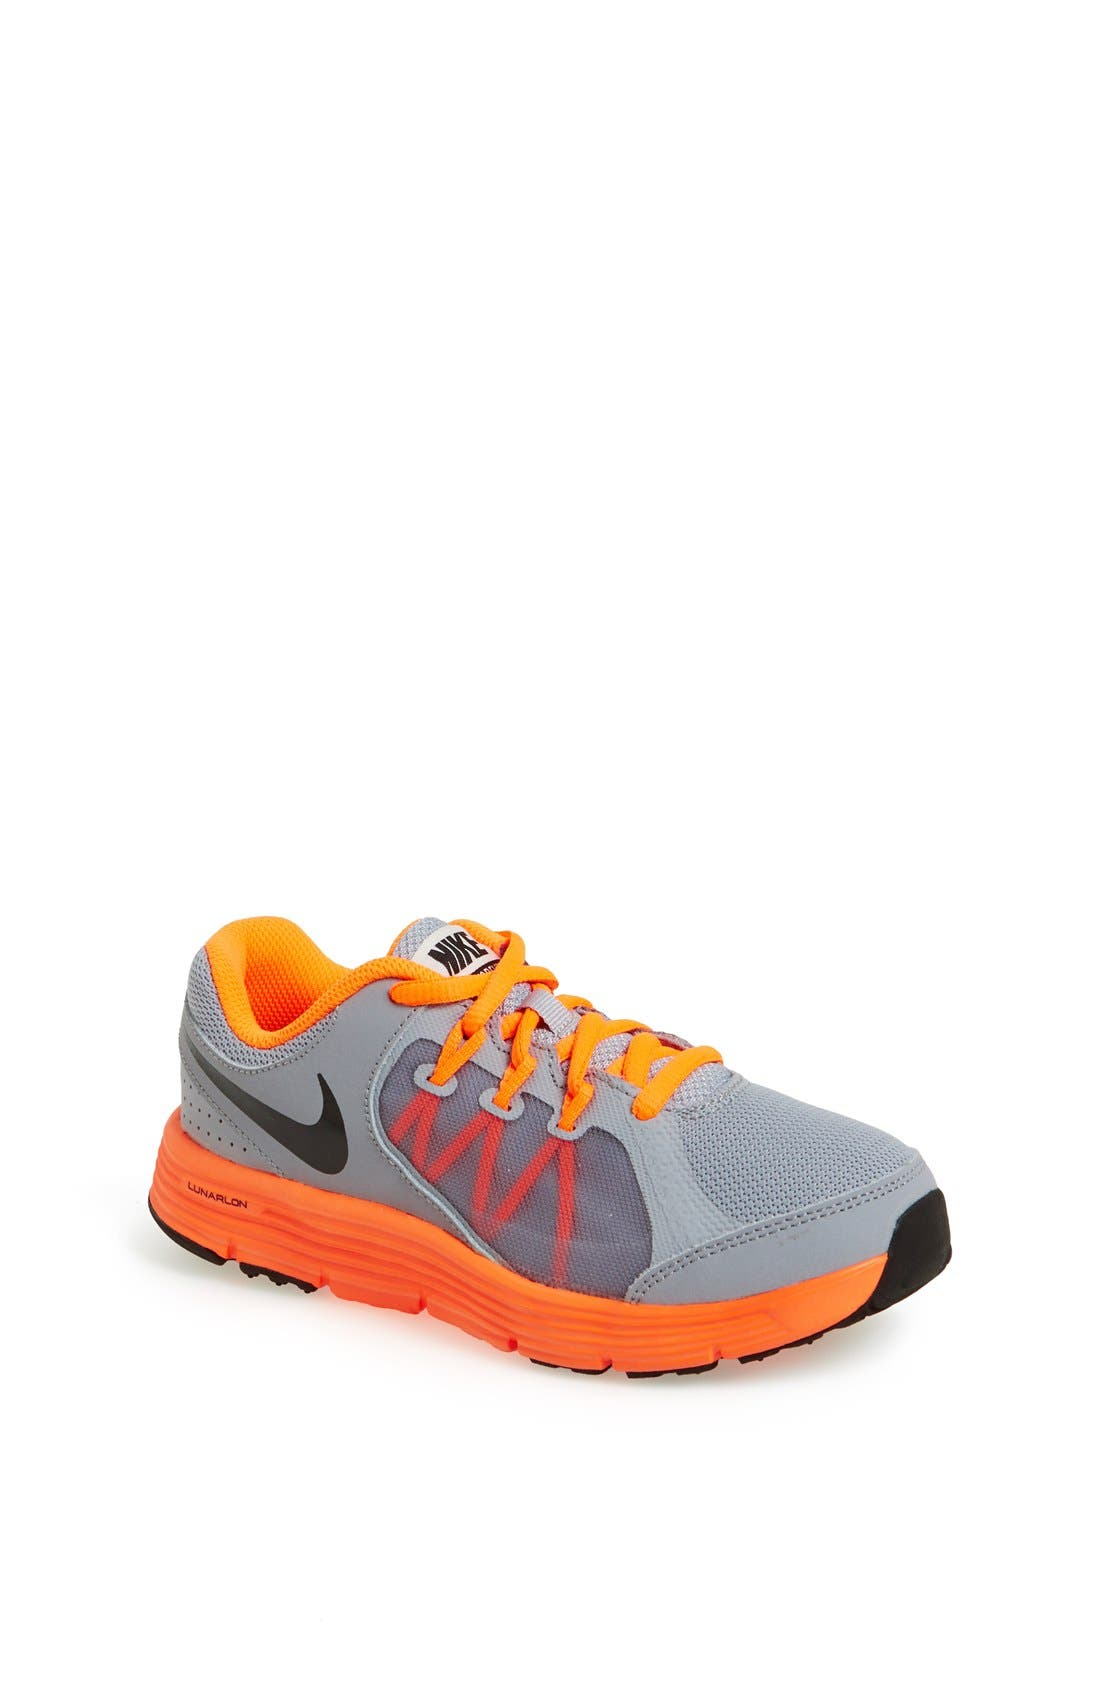 Alternate Image 1 Selected - Nike 'Lunar Forever 3' Running Shoe (Toddler & Little Kid)